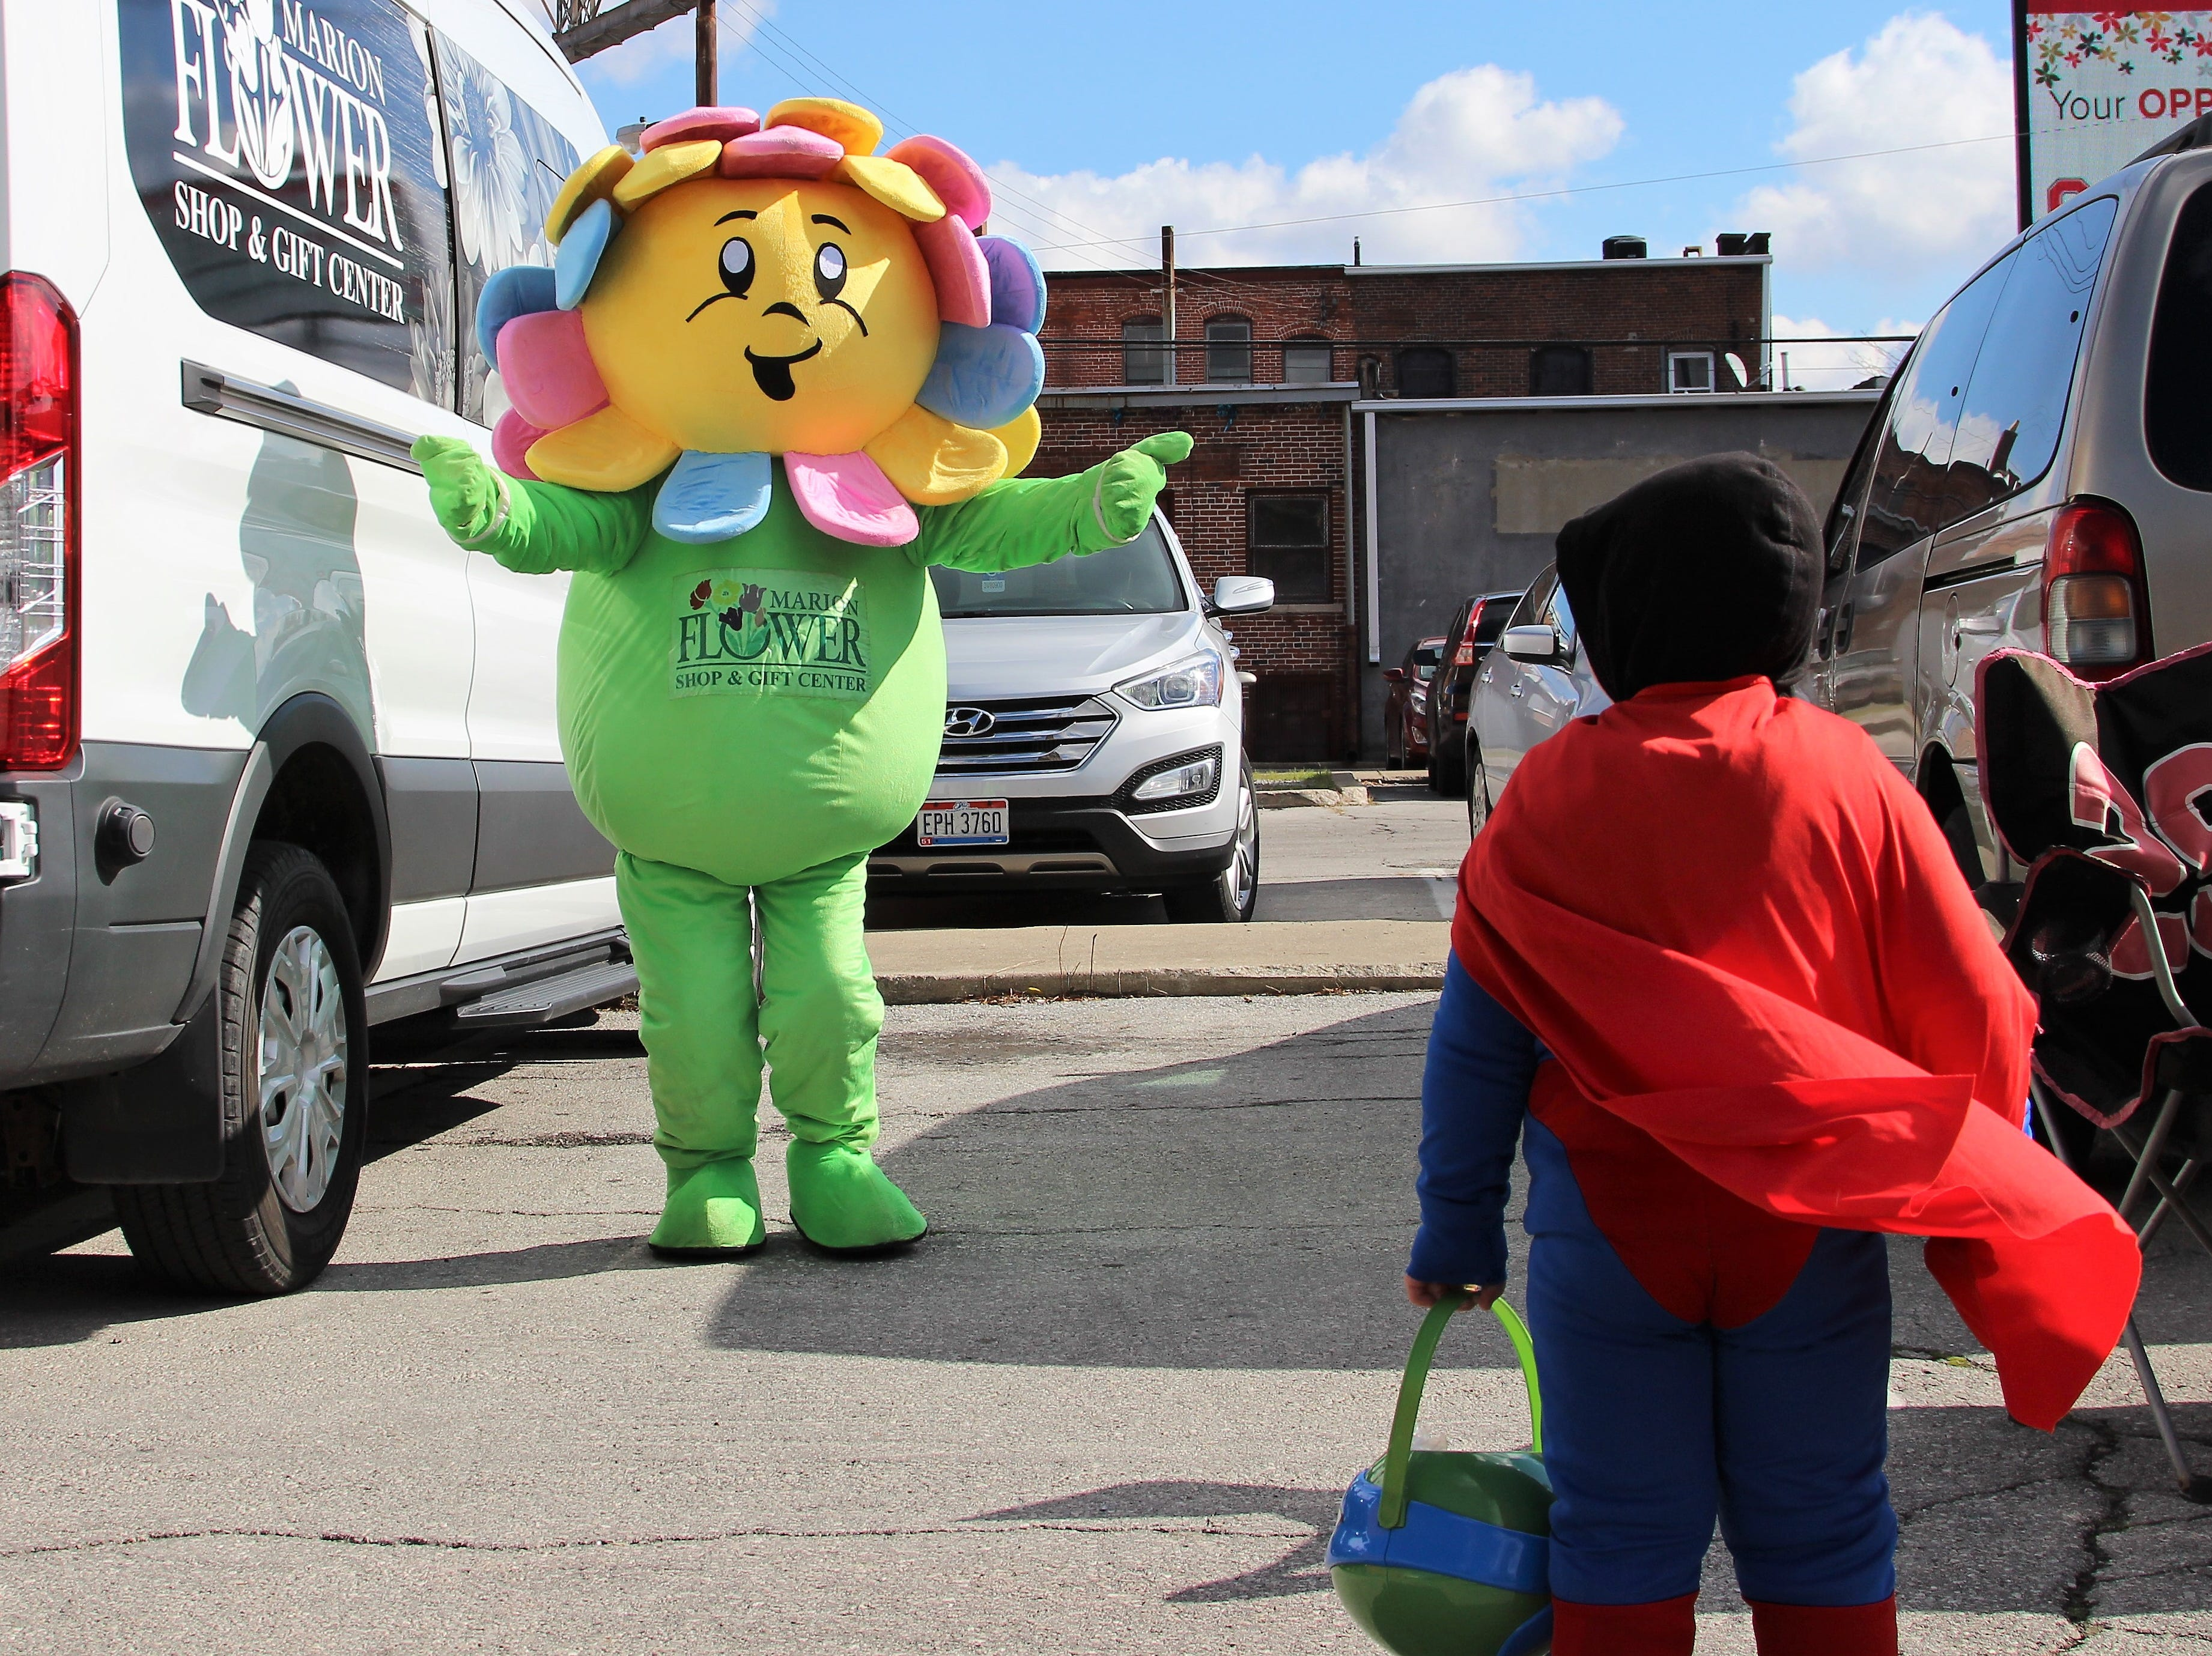 A young boy dressed as superman inches for a hug with the mascot of the Marion Flower Shop on Saturday. He was there to collect candy as downtown offices and businesses participated in the second annual Monster March.